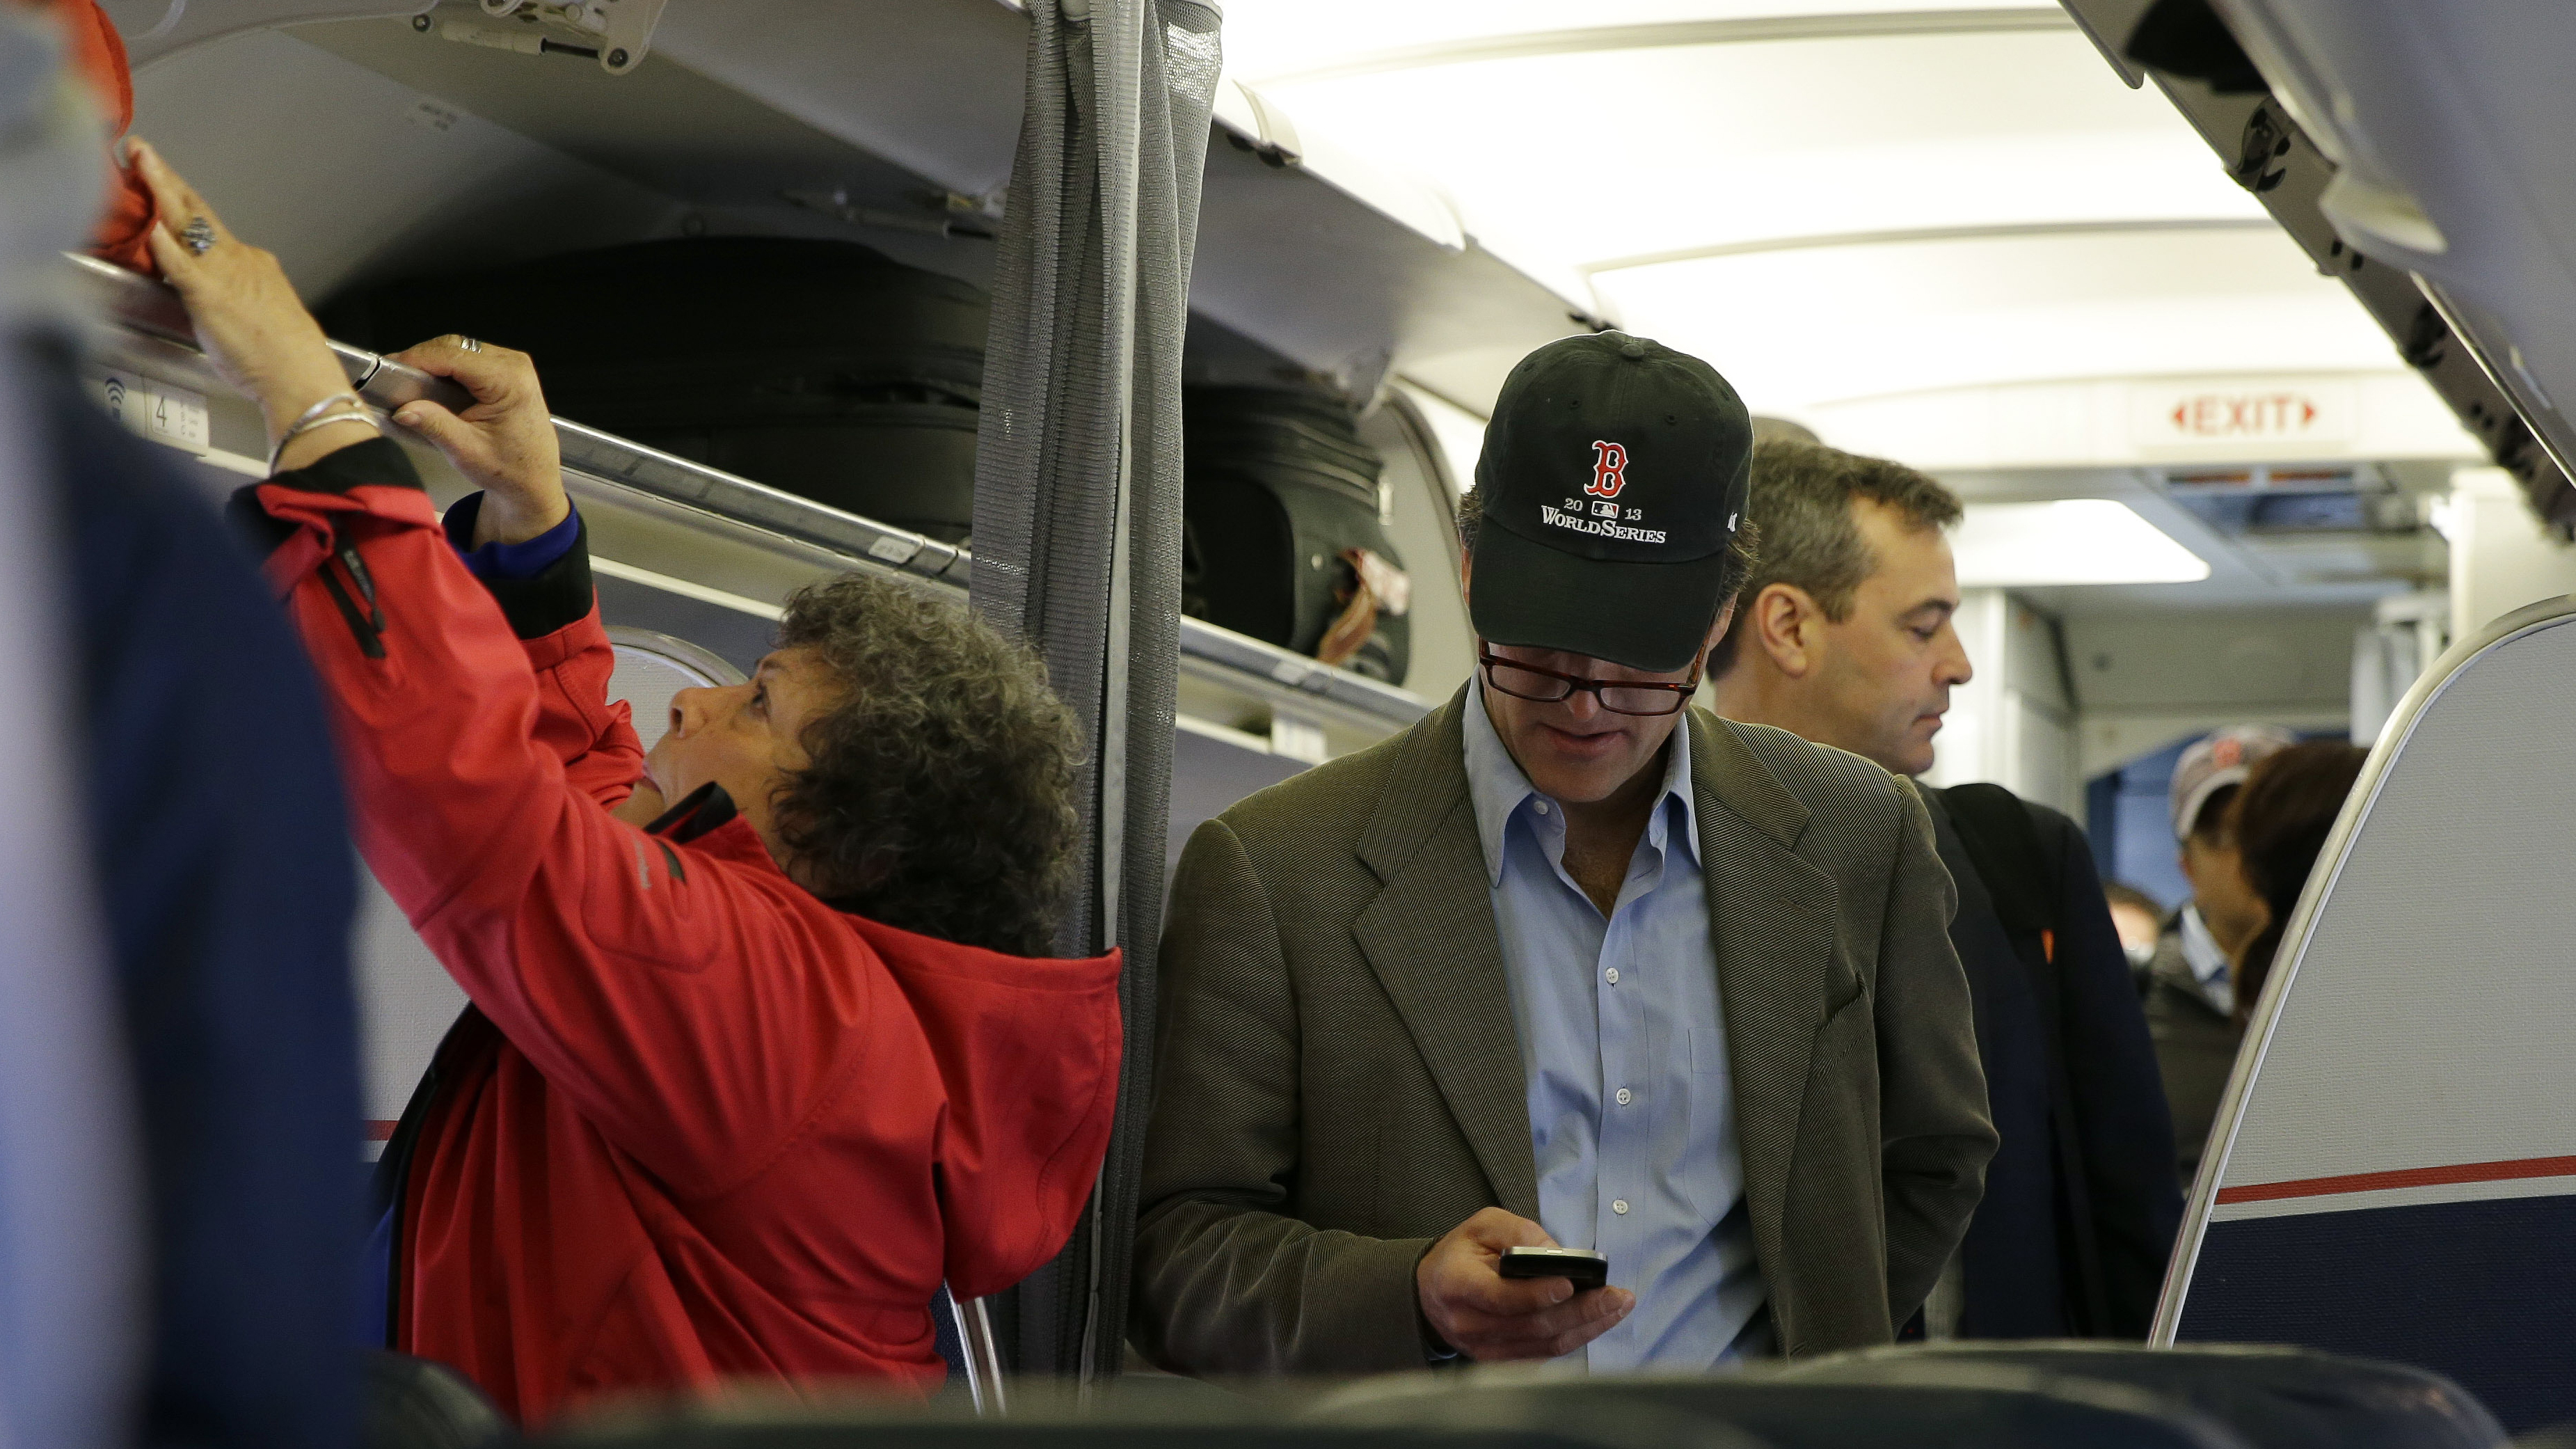 Rule Allowing In-Flight Phone Calls Clears First FCC Hurdle